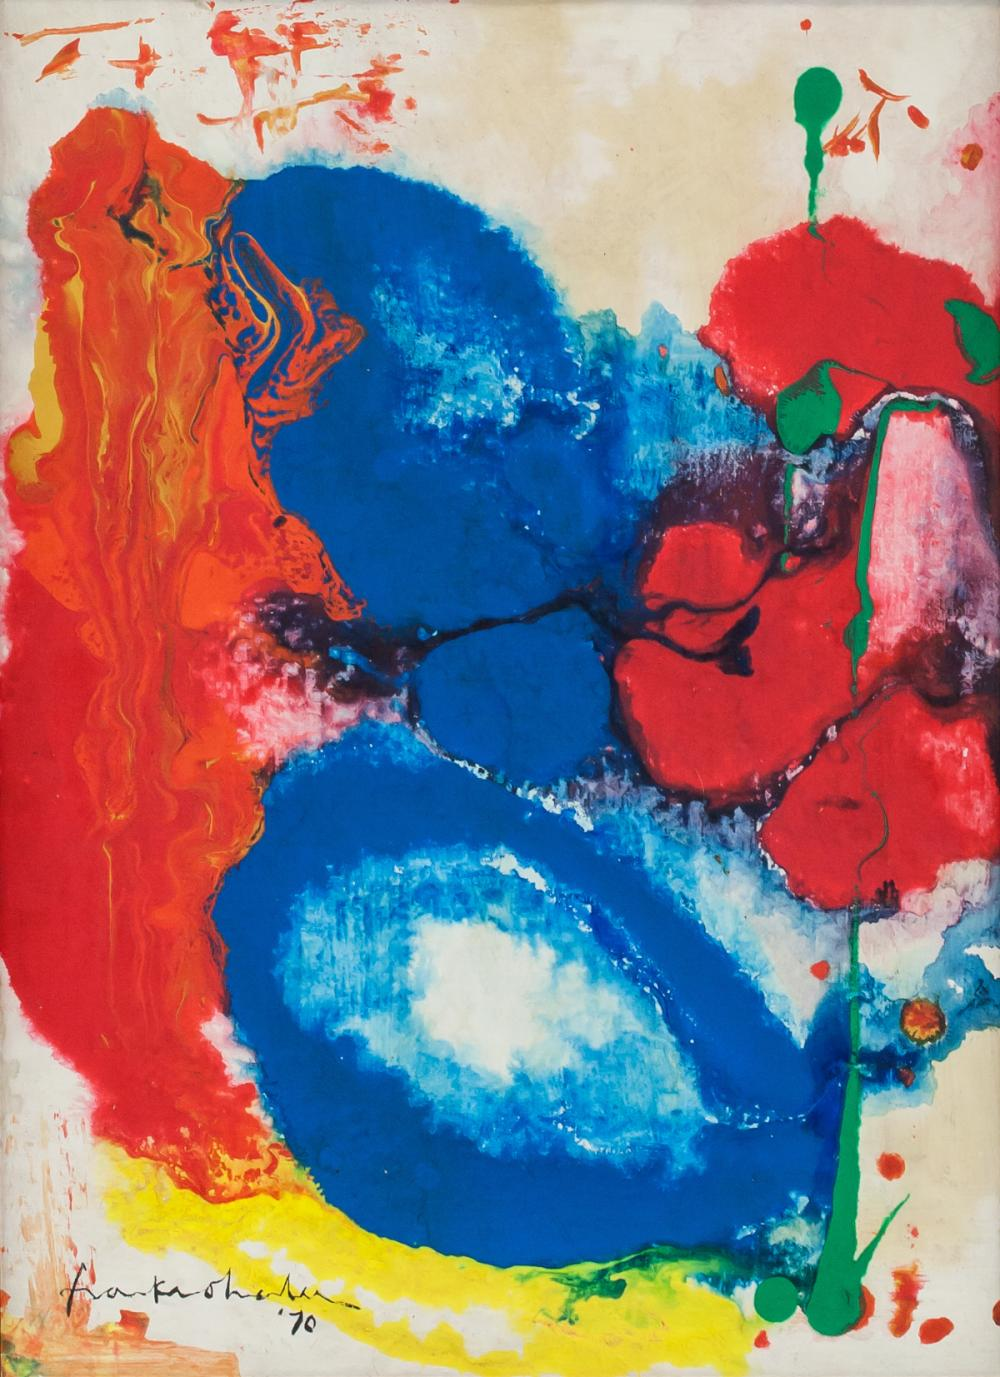 Helen Frankethaler American Abstract Oil on Canvas